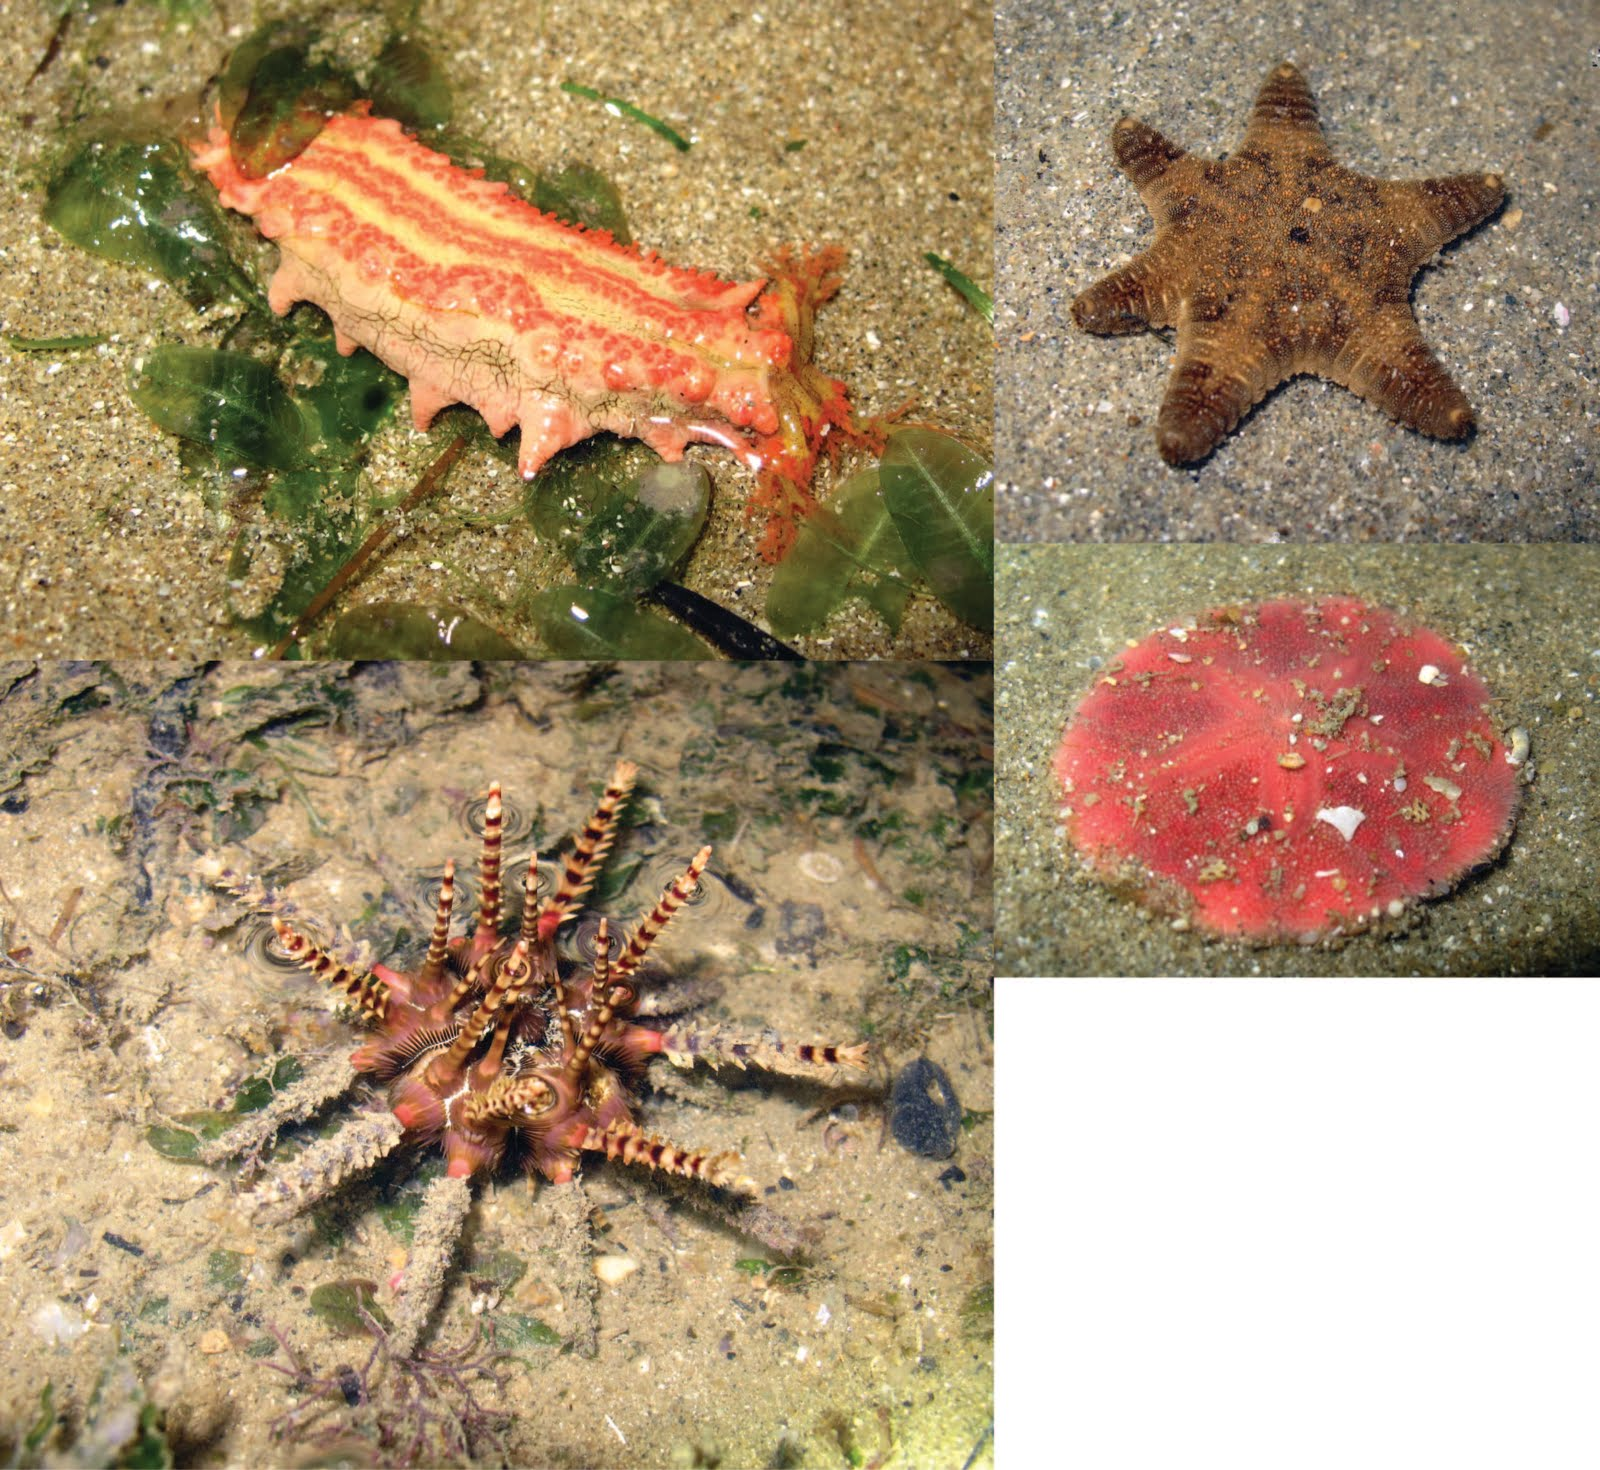 Seagrass beds animals - Other Animals That Occur Amongst The Seagrass Beds Would Be The Crabs And Crablets Not Only Do The Seagrass Beds Serve As Habitats Food Grounds And